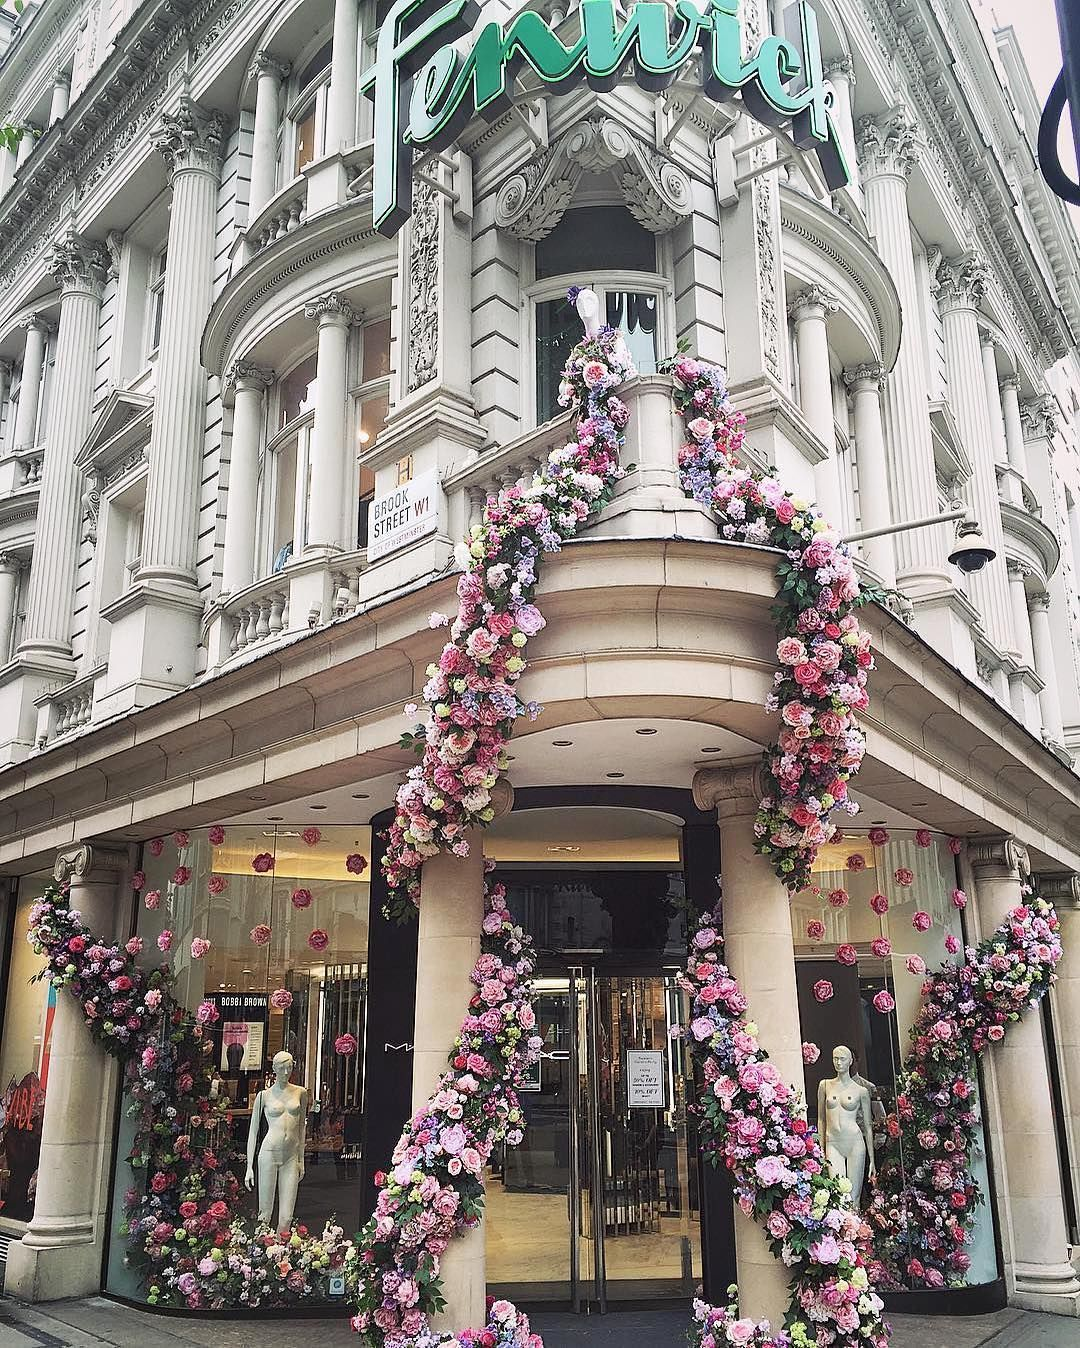 In honour of #mayfairinbloom and the #chelseaflowershow last week Fenwick Stores' Bond Street location was covered in floral by By Appointment Only Design. How beautiful would this #floraldesign look at a #wedding reception? | Instagram repost : byappointmenttony | WedLuxe Magazine | #wedding #luxury #weddinginspiration #flowers #floral